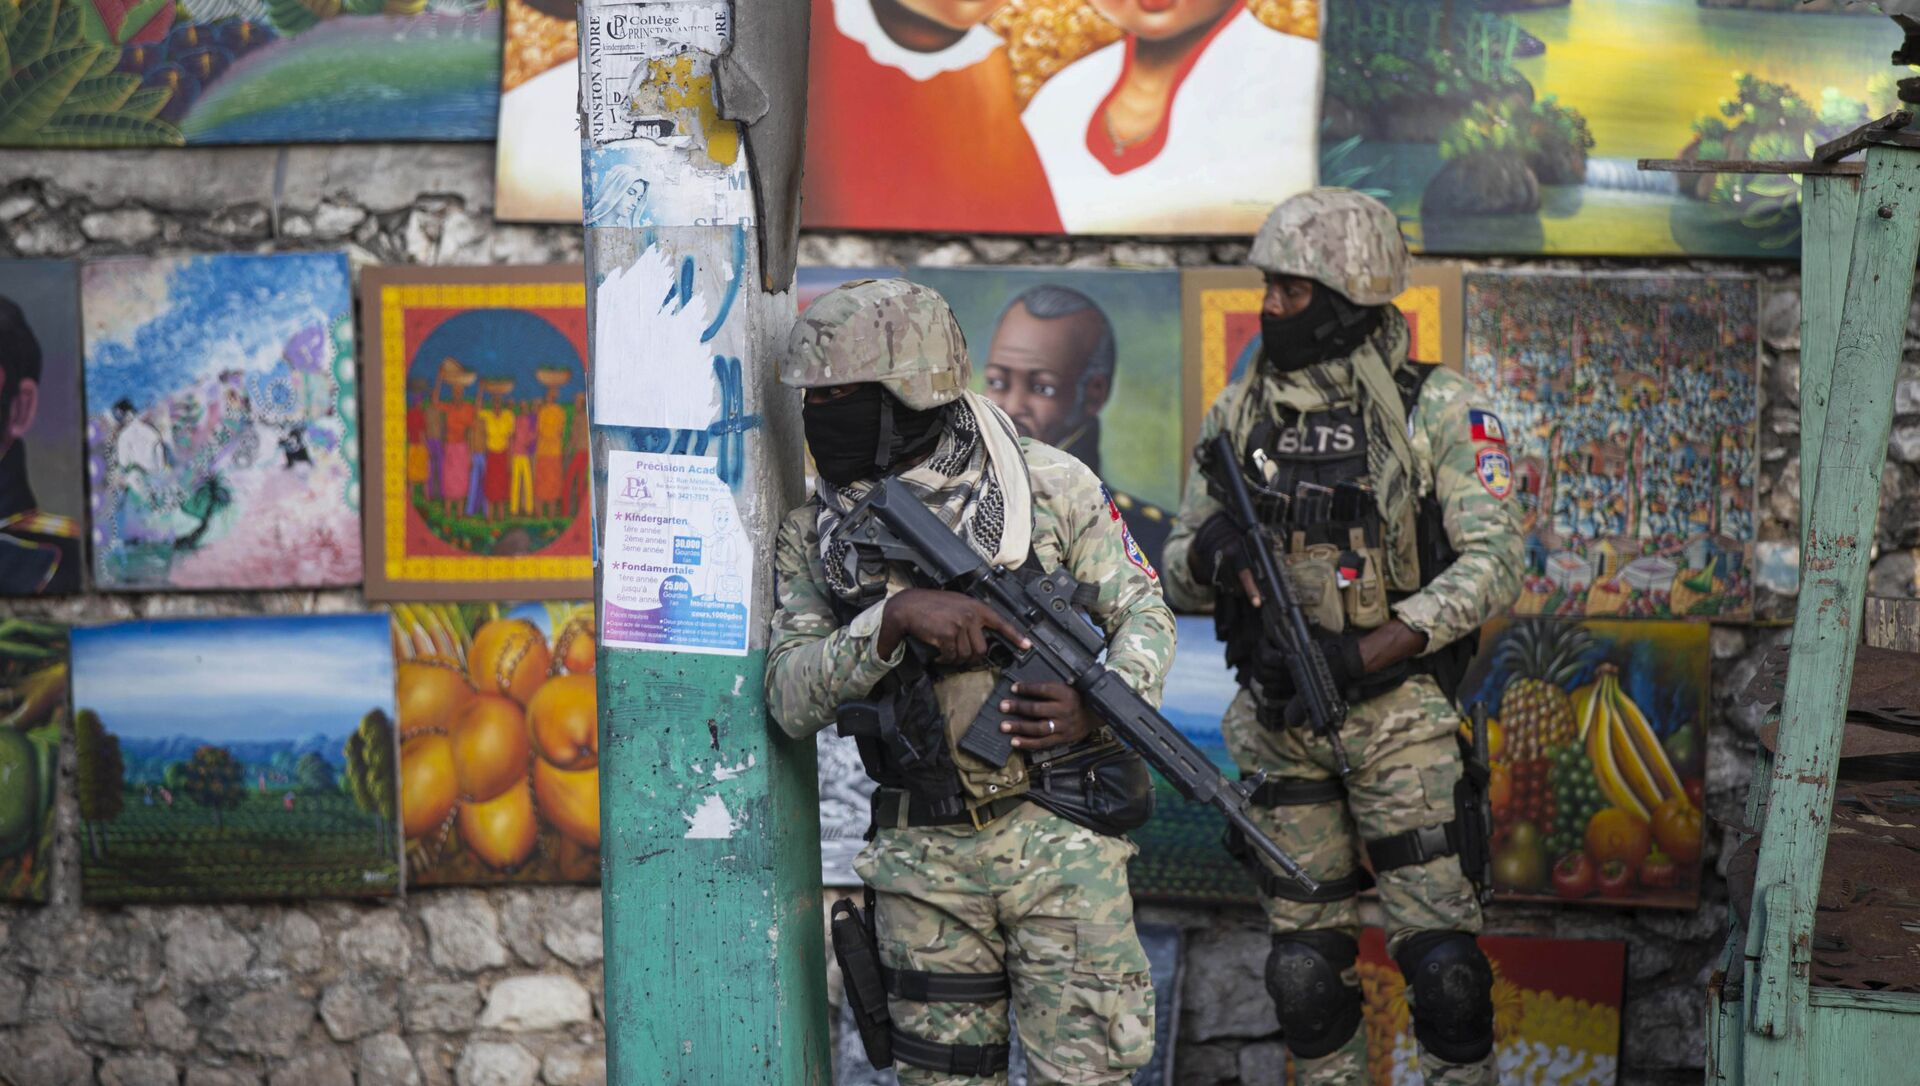 Soldiers patrol in Petion Ville, the neighborhood where the late Haitian President Jovenel Moise lived in Port-au-Prince, Haiti, Wednesday, July 7, 2021. - Sputnik International, 1920, 08.07.2021